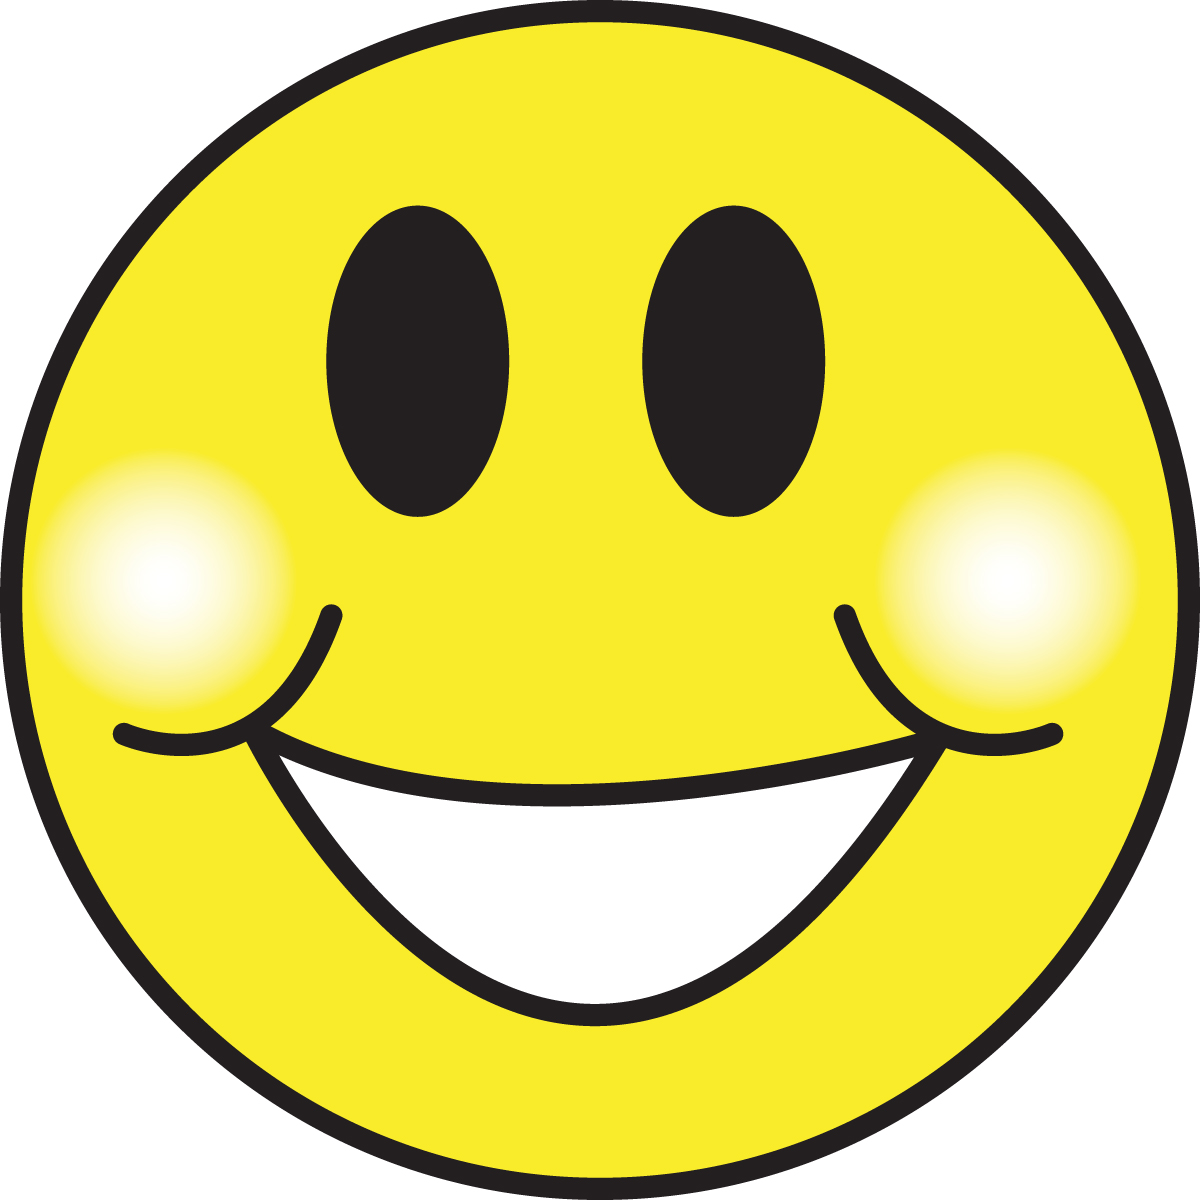 Image Of Smiley Face - ClipArt Best